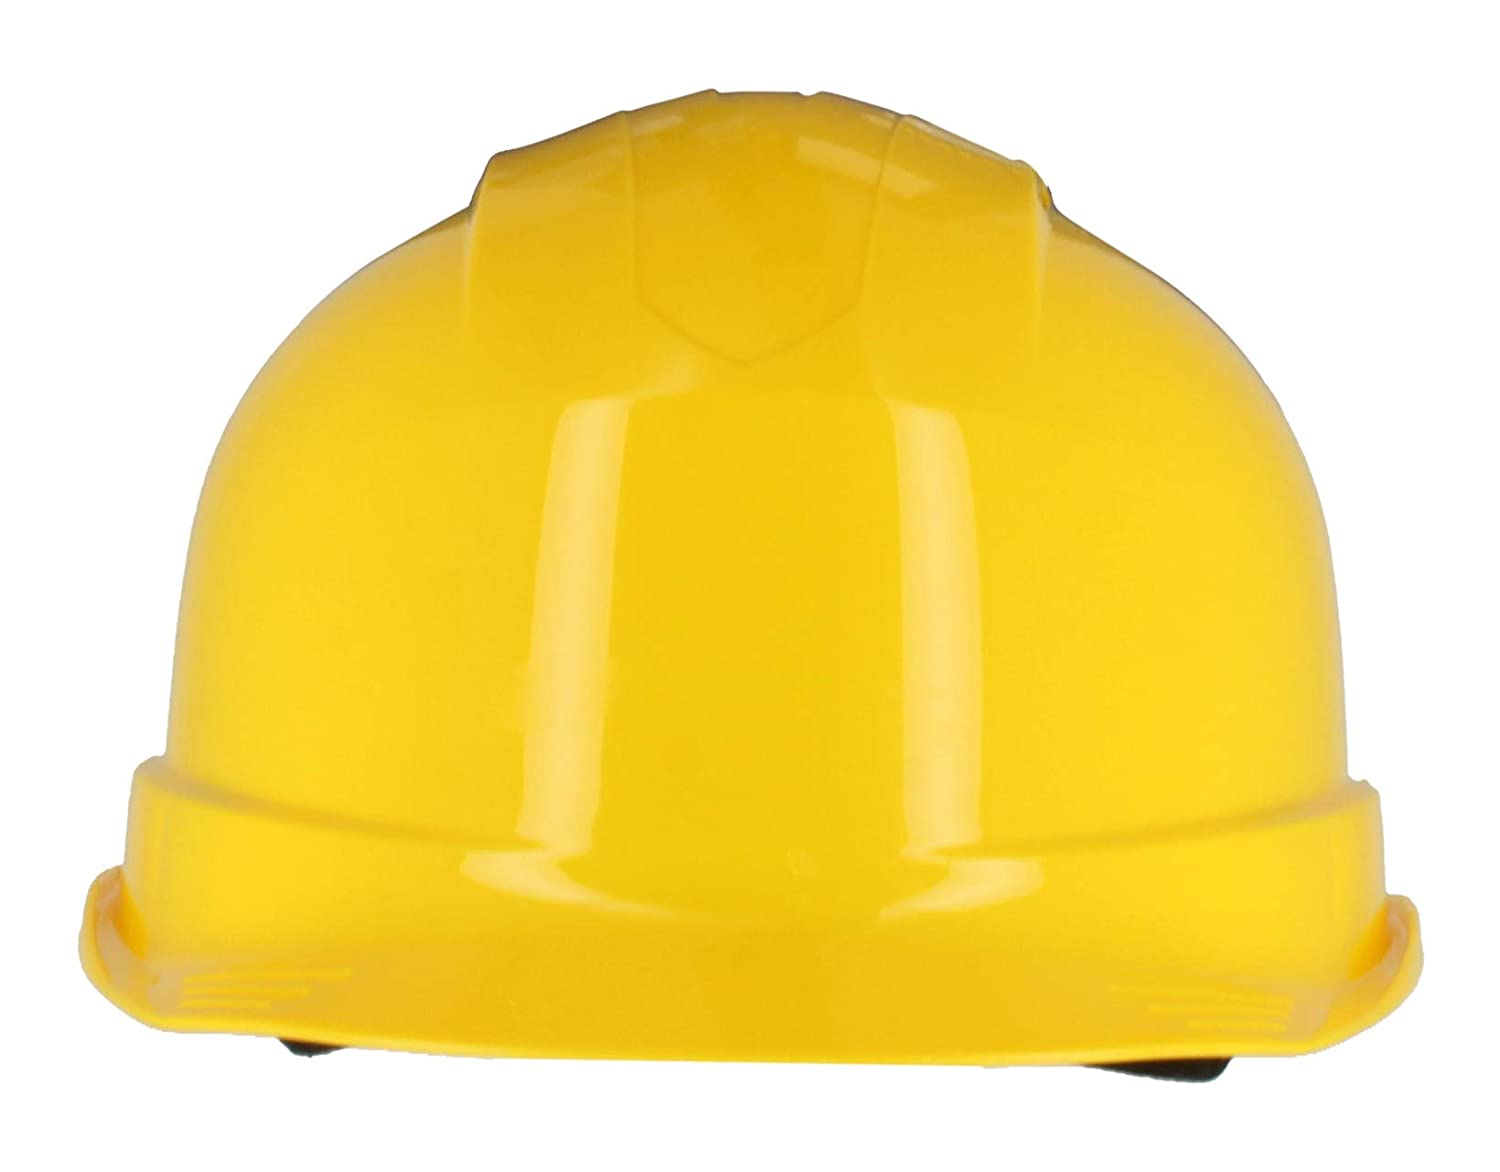 EN 397 /& A1 Certified 6 Point Harness Basic Wheel Adjustment, White Ventilated Construction Hard Hat Silent SL1470 Industrial Safety Helmet